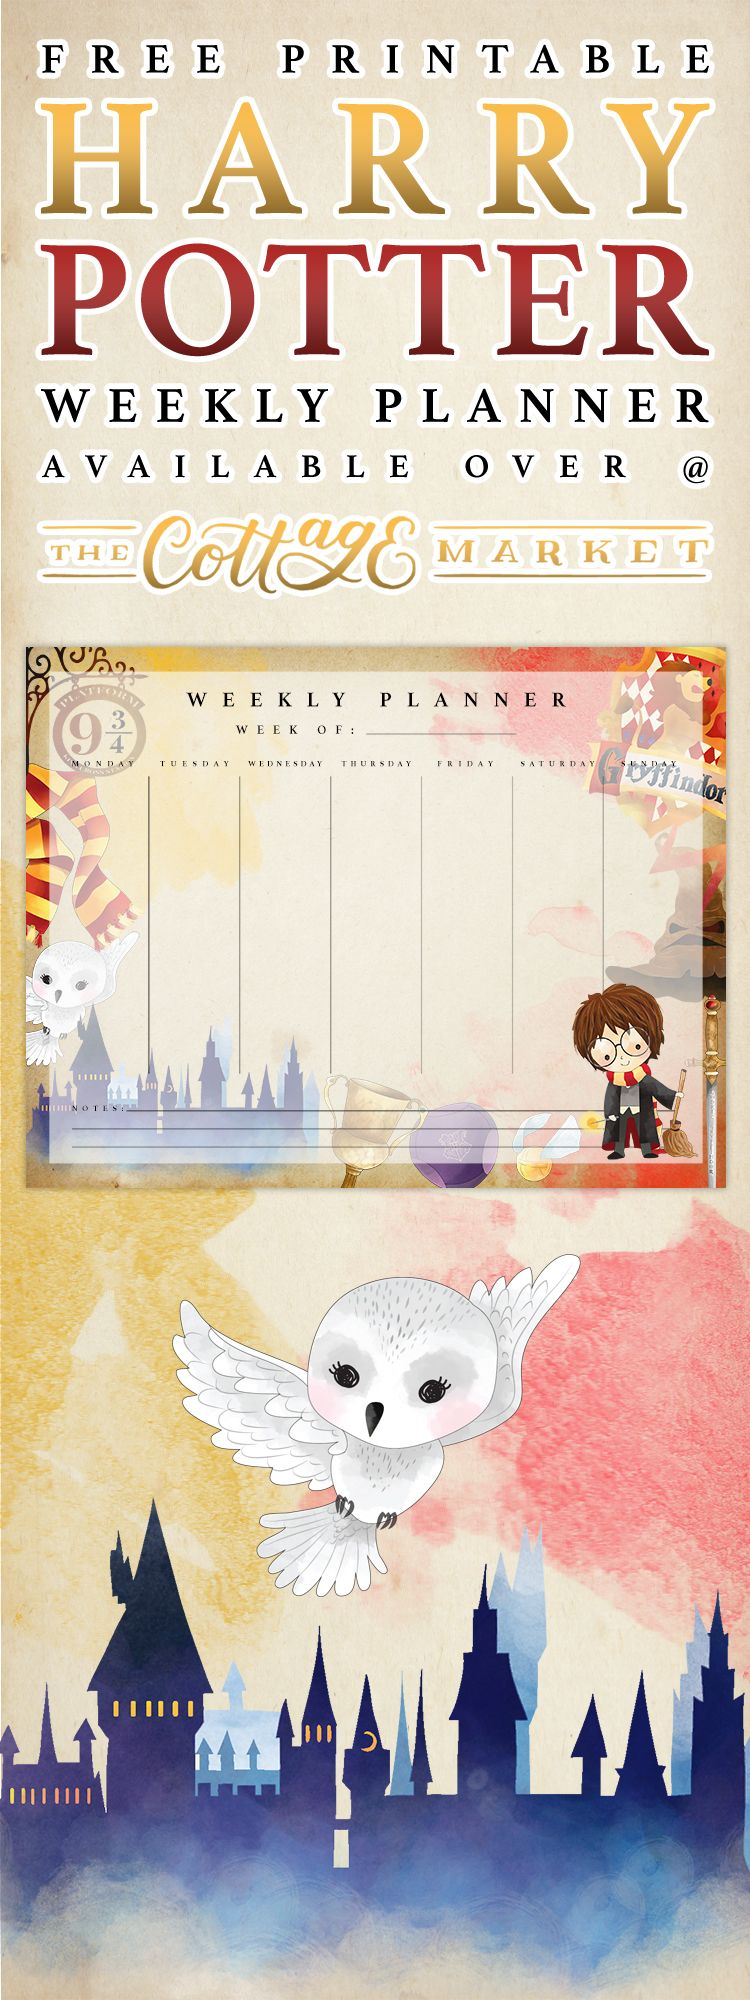 Free Printable Harry Potter Weekly Planner